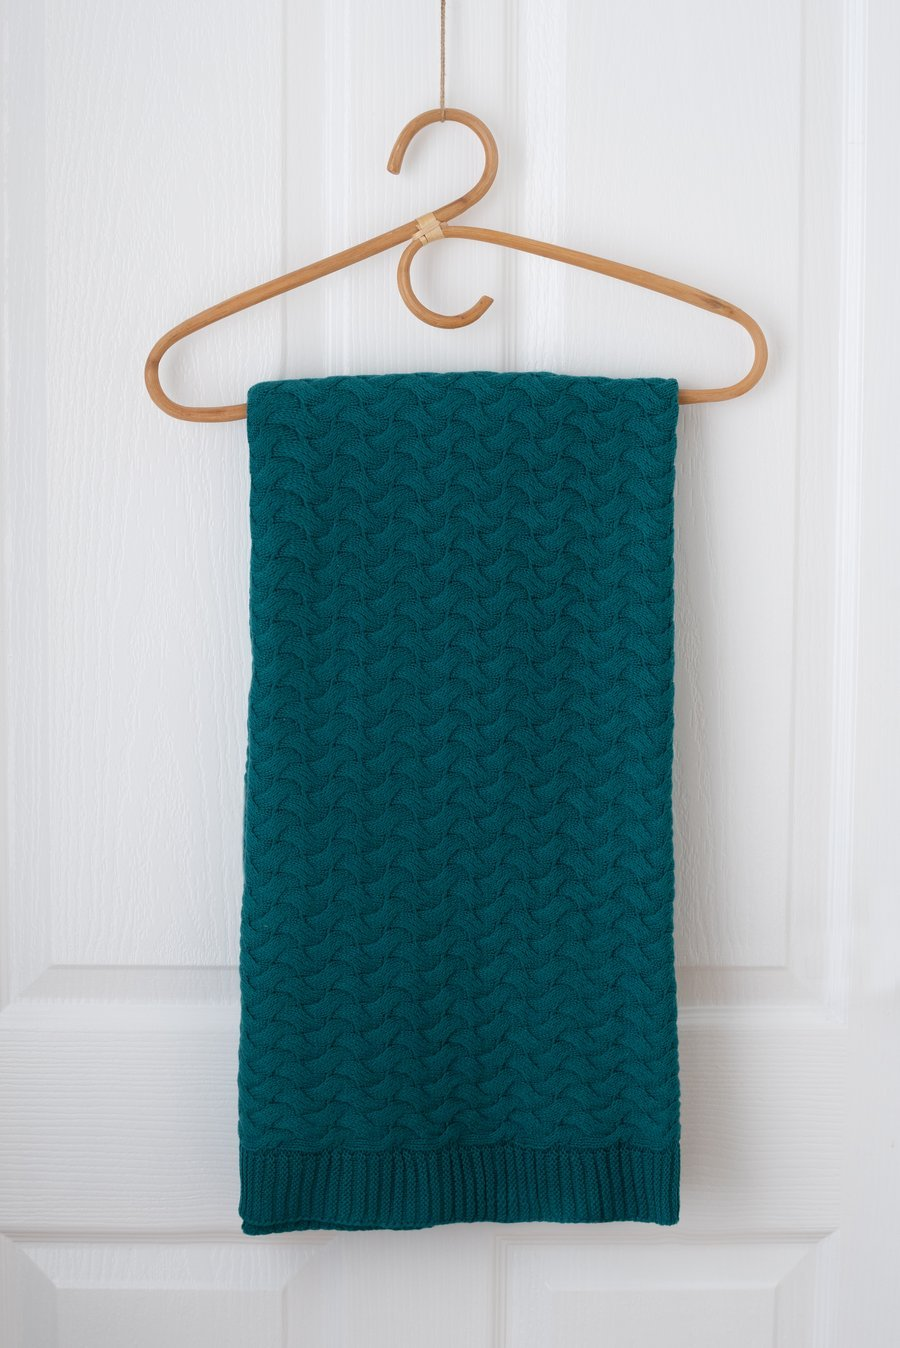 Kute Cuddles - Faith Knit Baby Blanket - Emerald